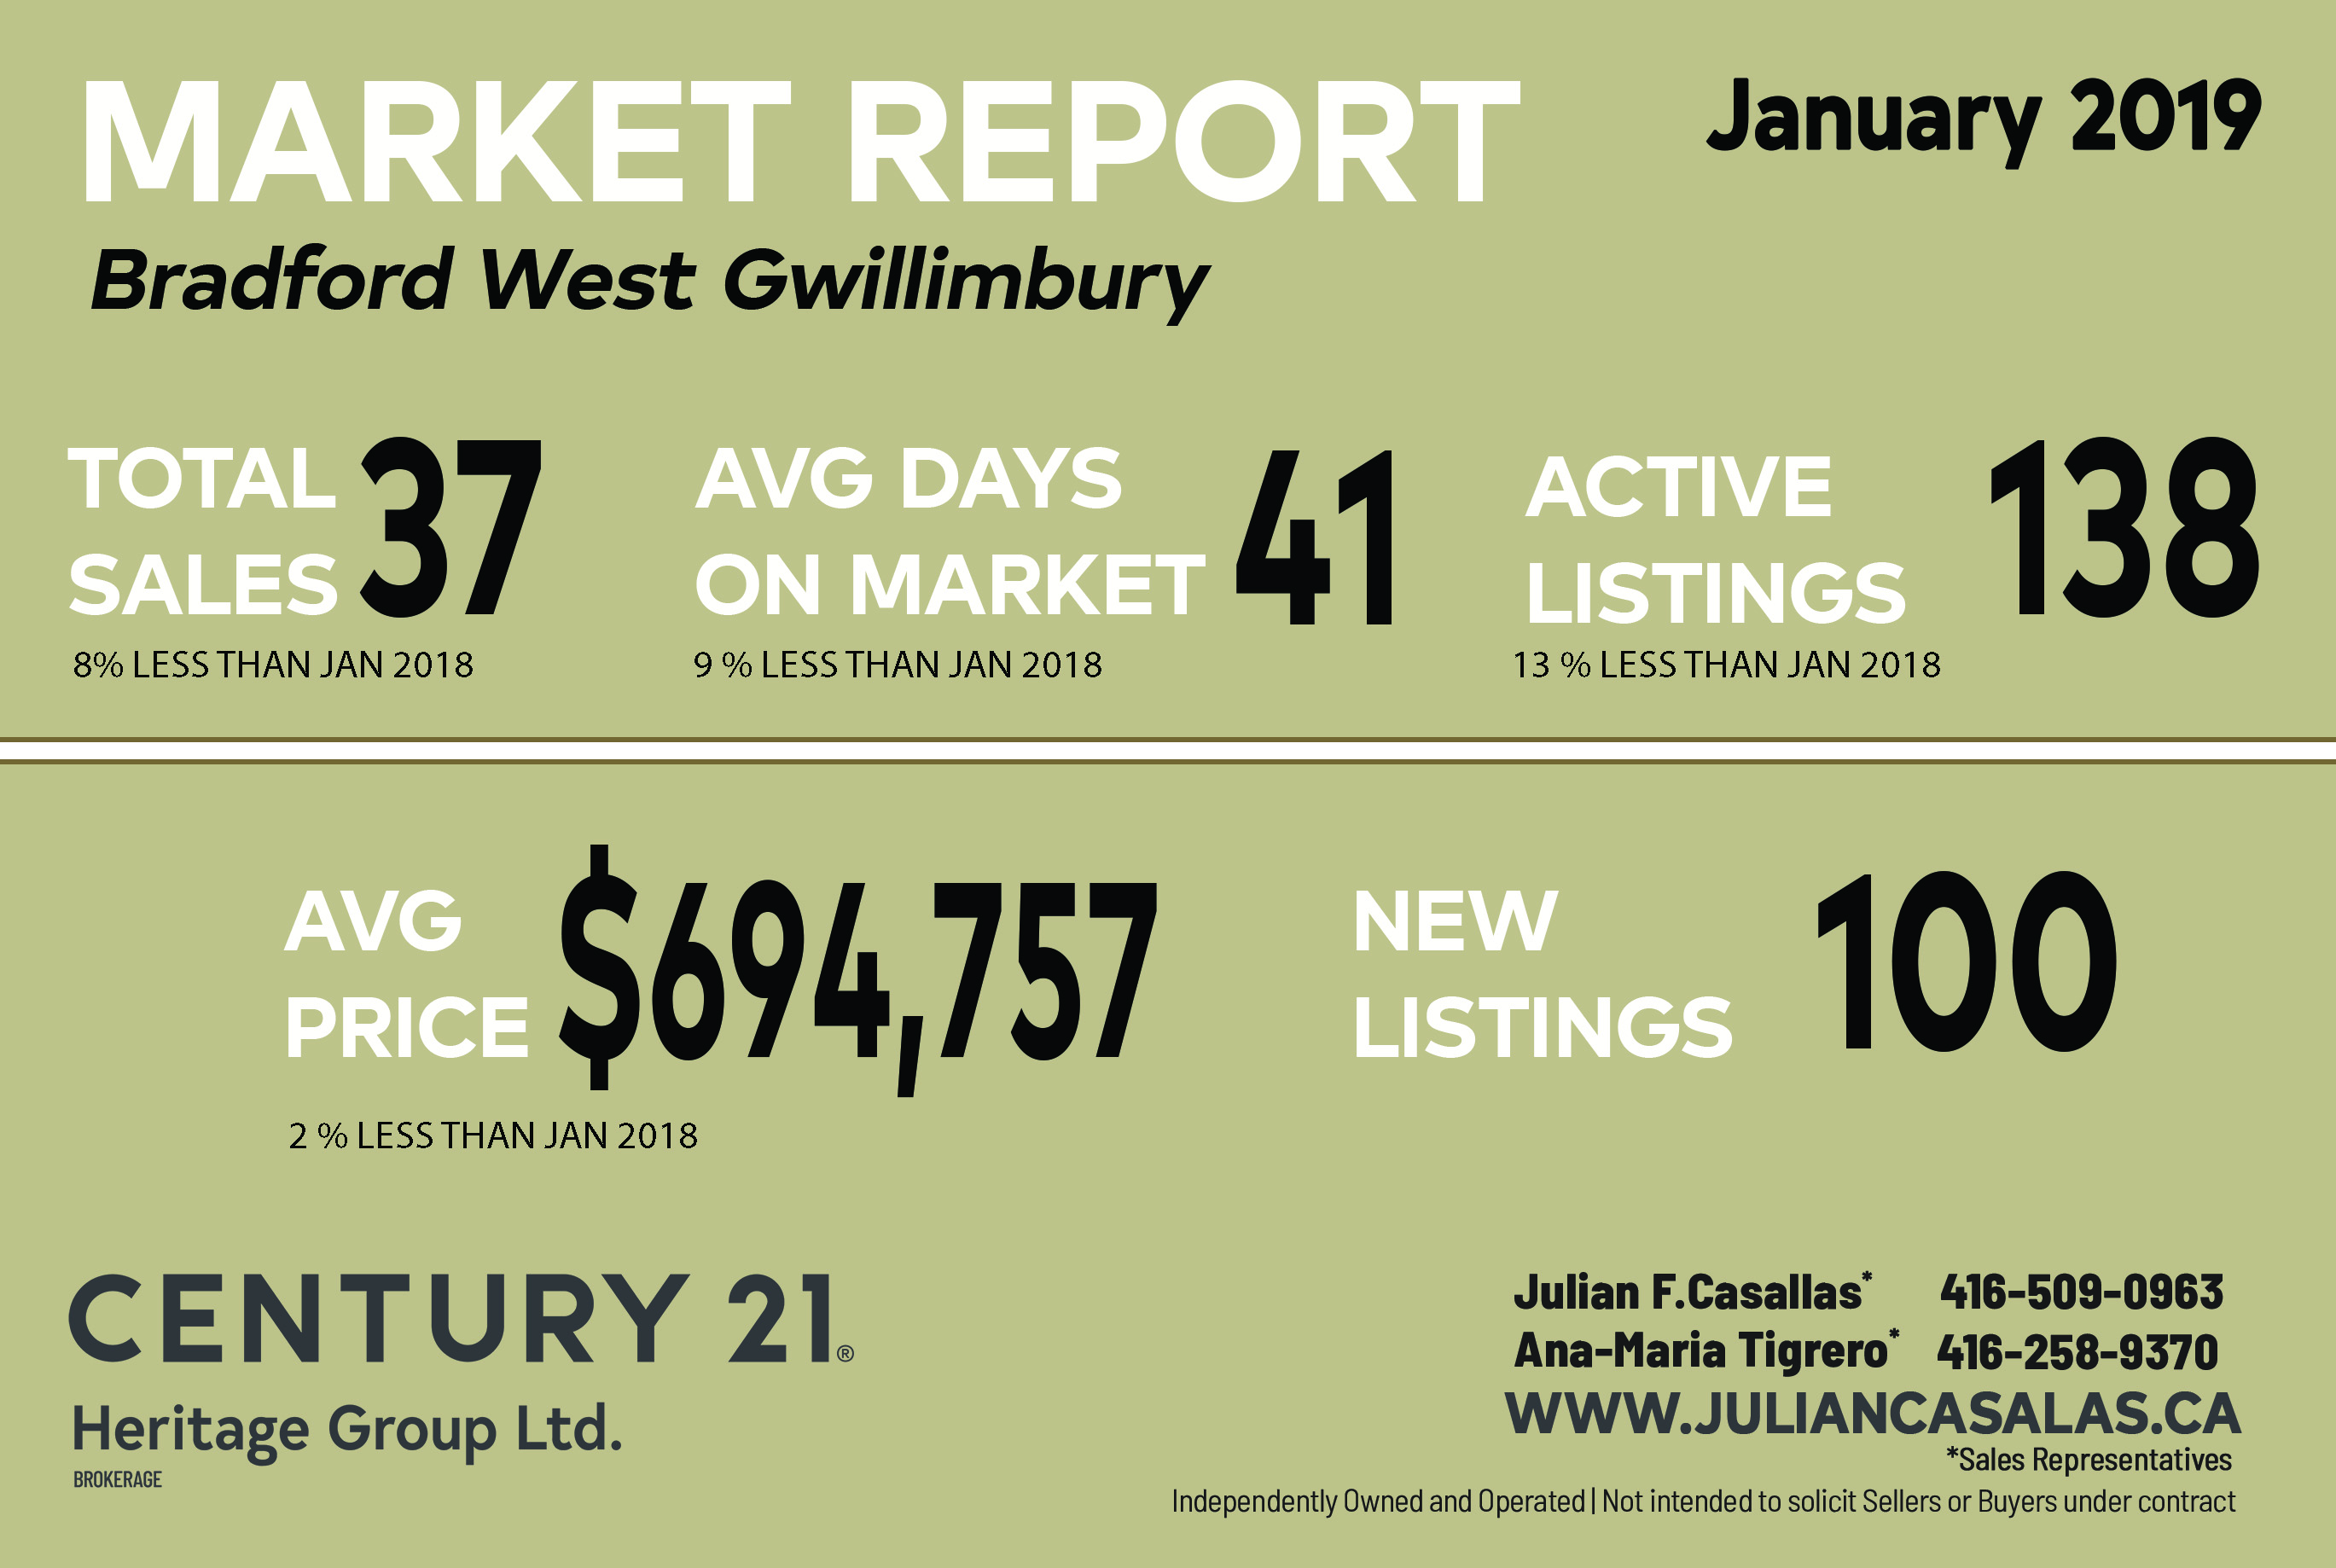 Bradford West Gwillimbury Market Report 2019